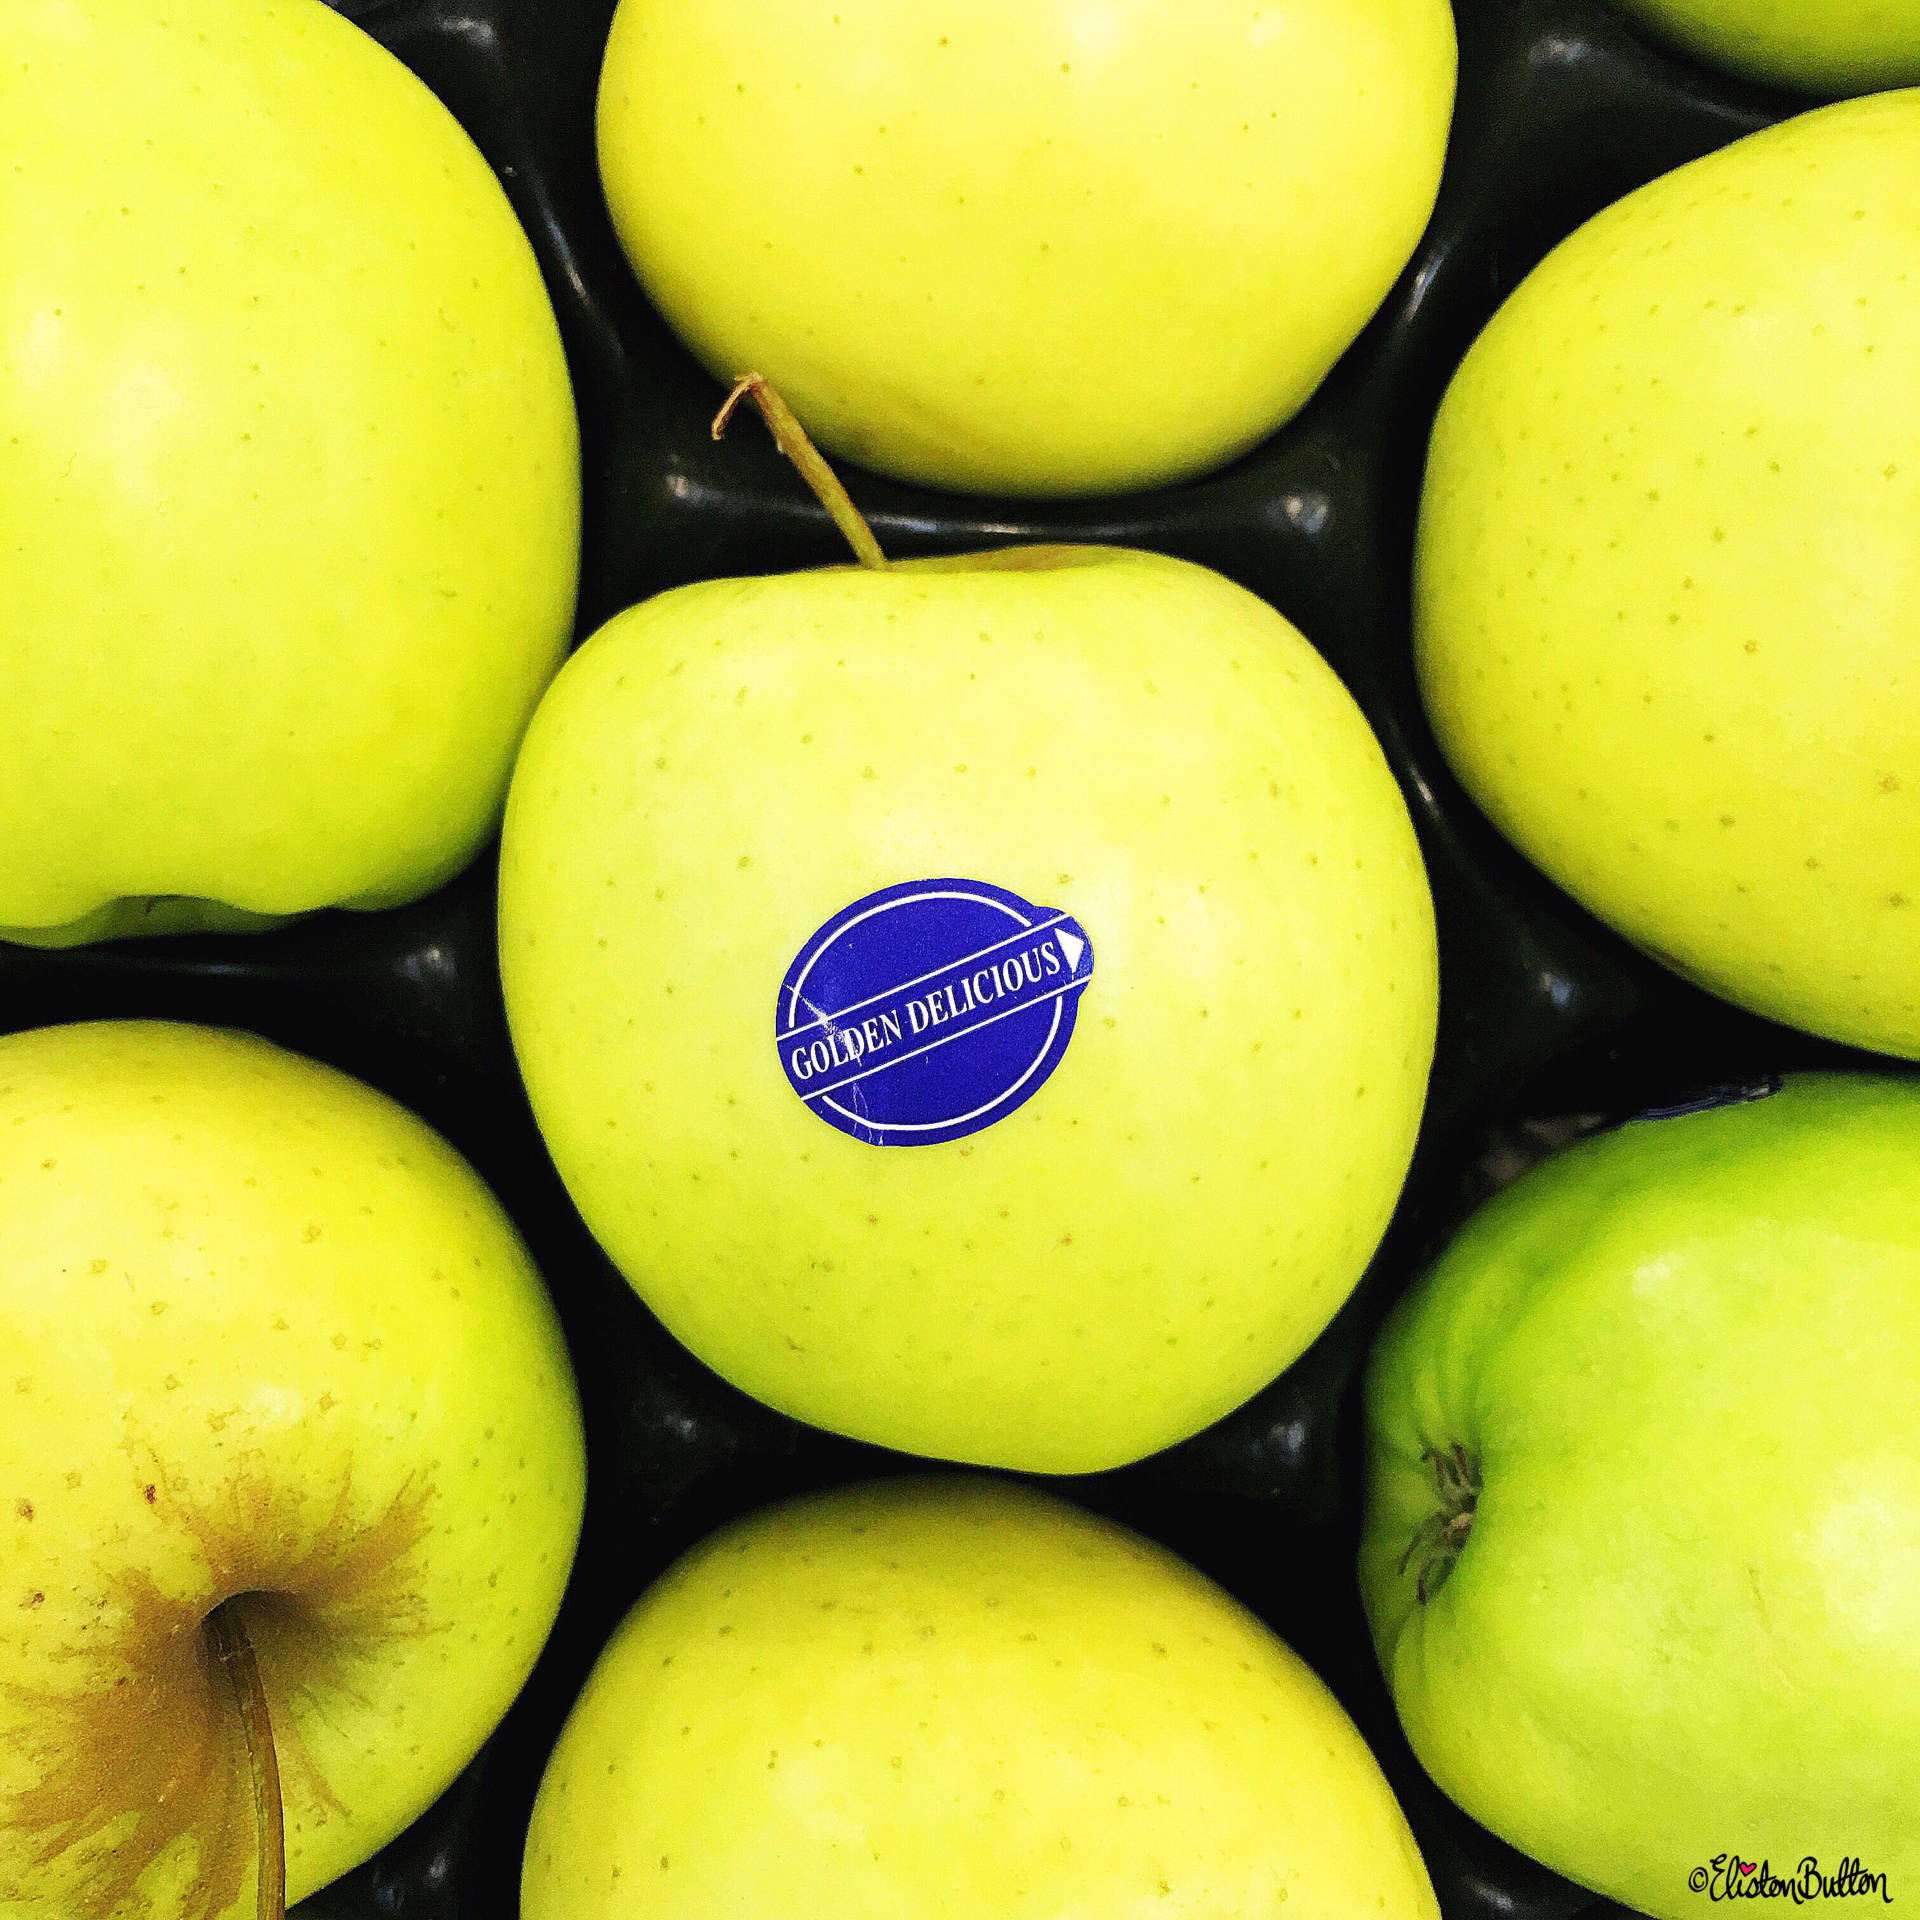 Day 22 - Delicious - Green Golden Delicious Apples - Photo-a-Day – June 2016 at www.elistonbutton.com - Eliston Button - That Crafty Kid – Art, Design, Craft & Adventure.